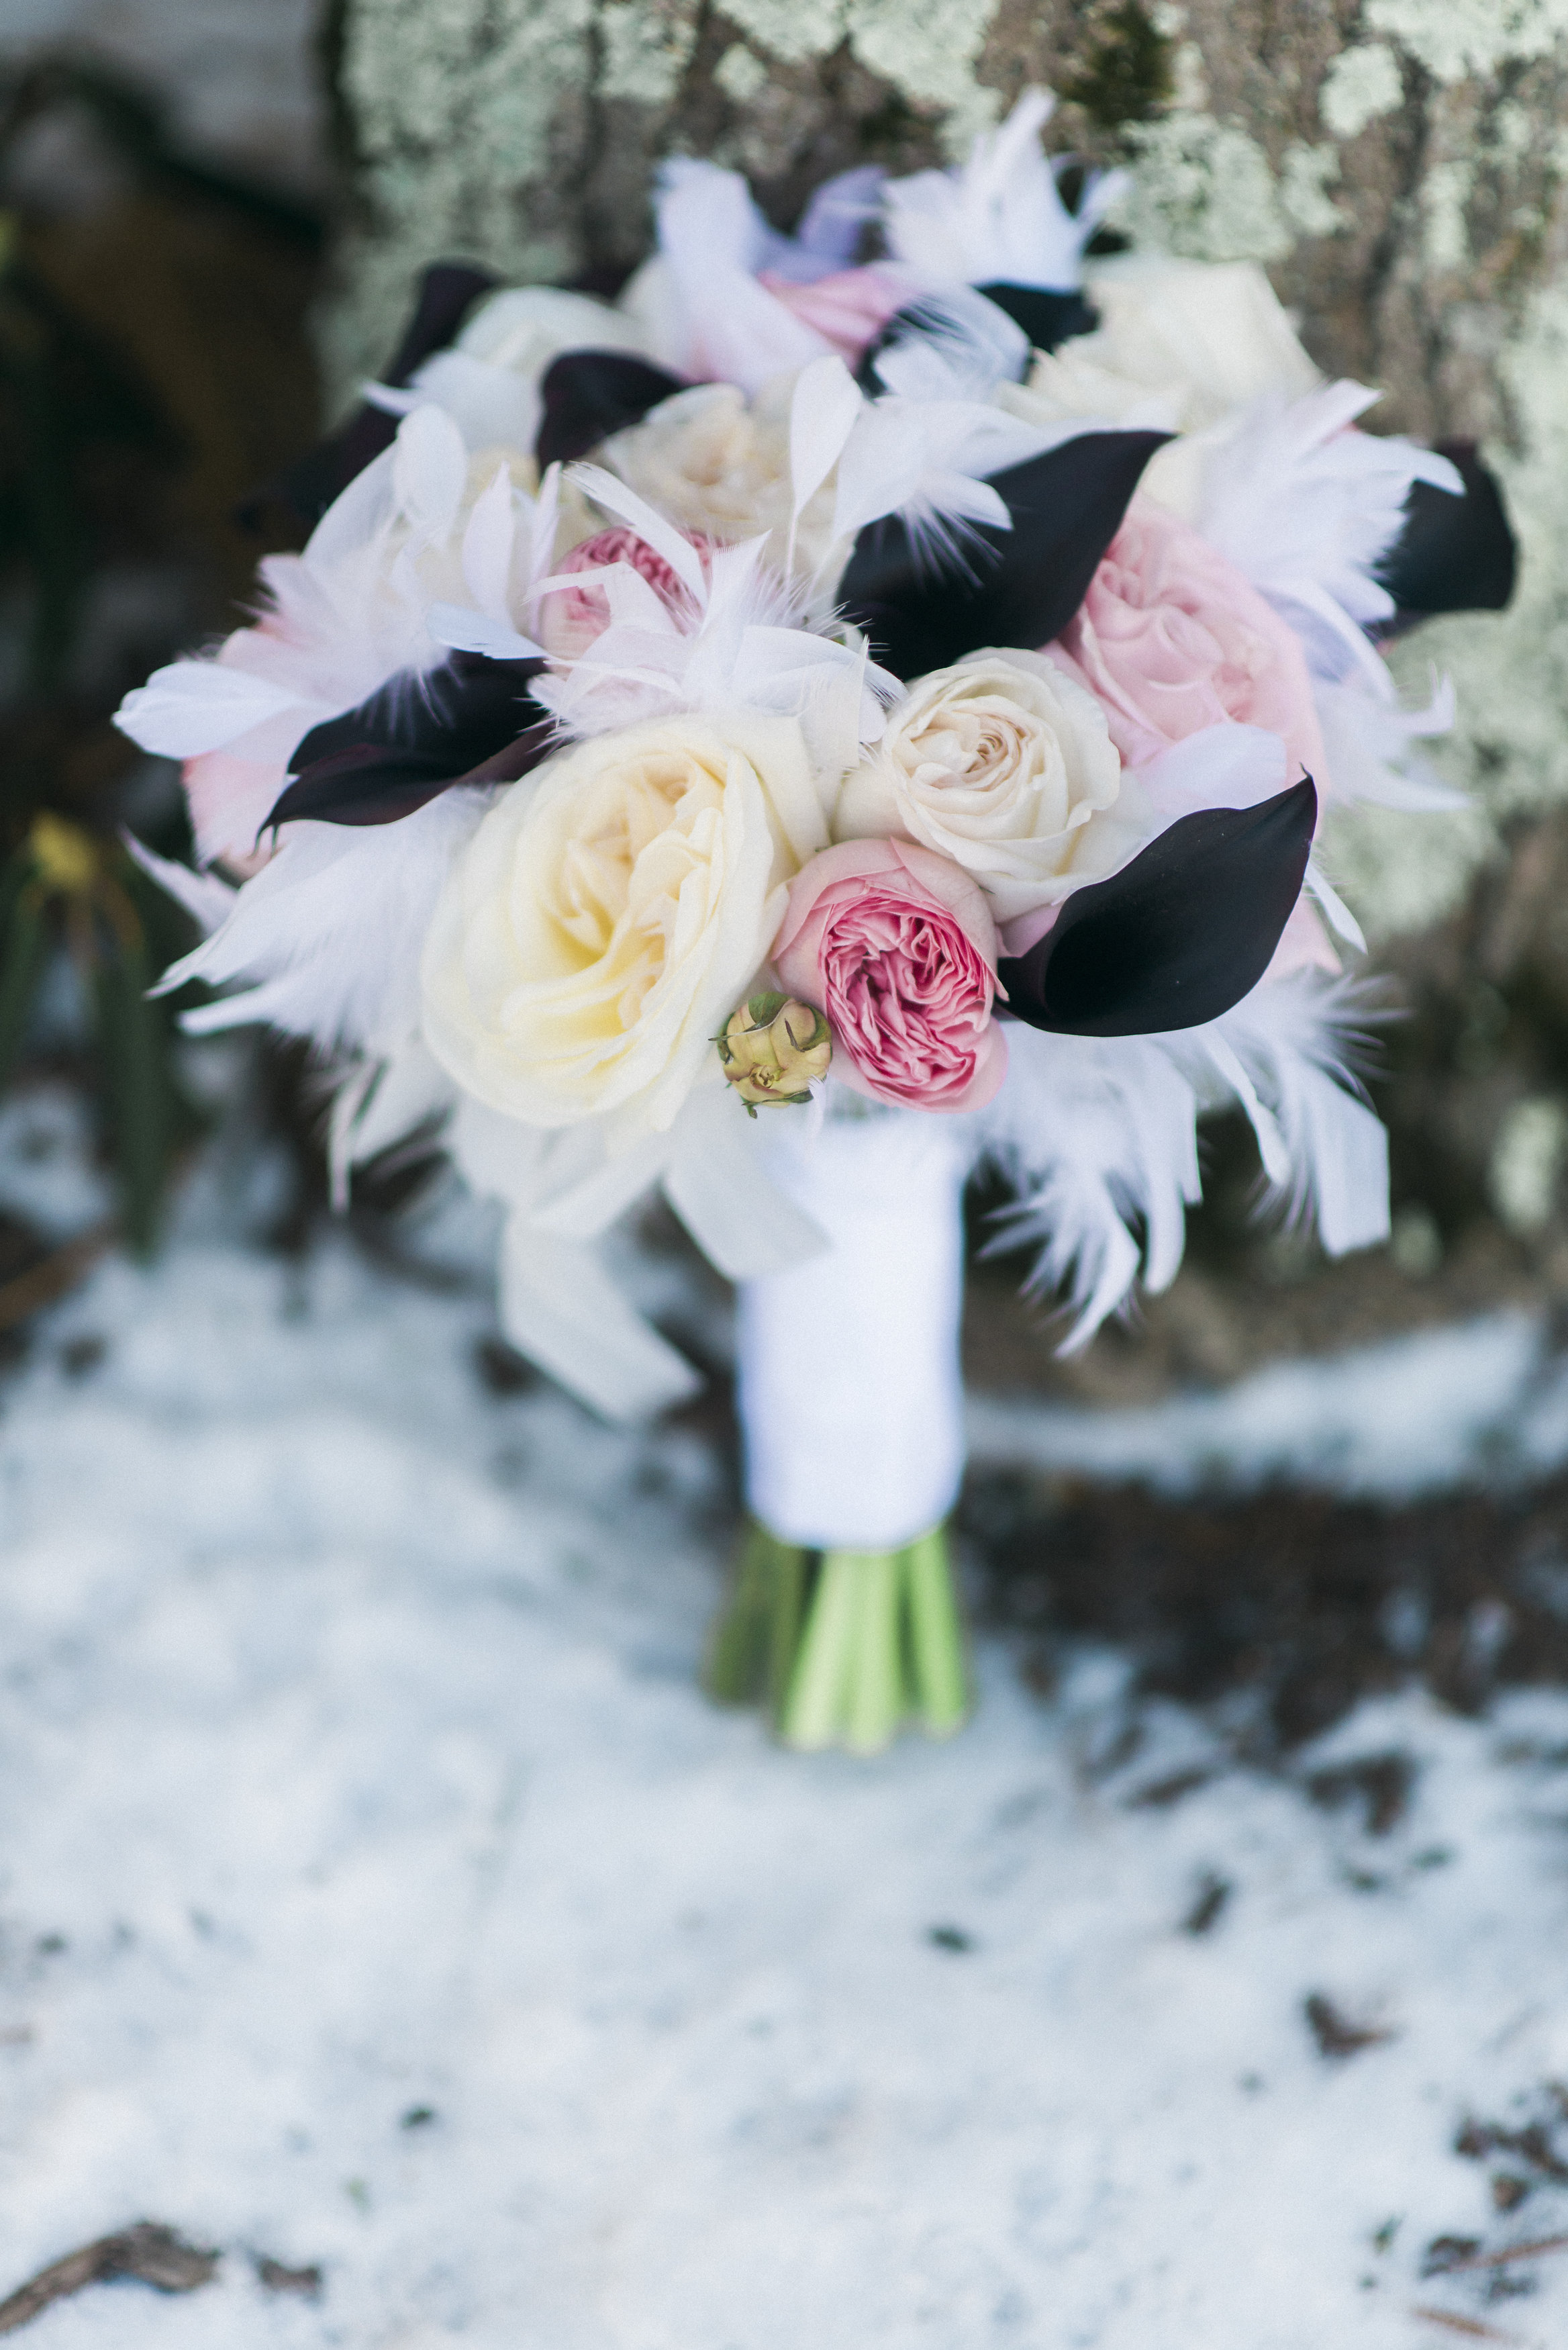 Winter Bouquet captured by Amber Rebecca Photography.